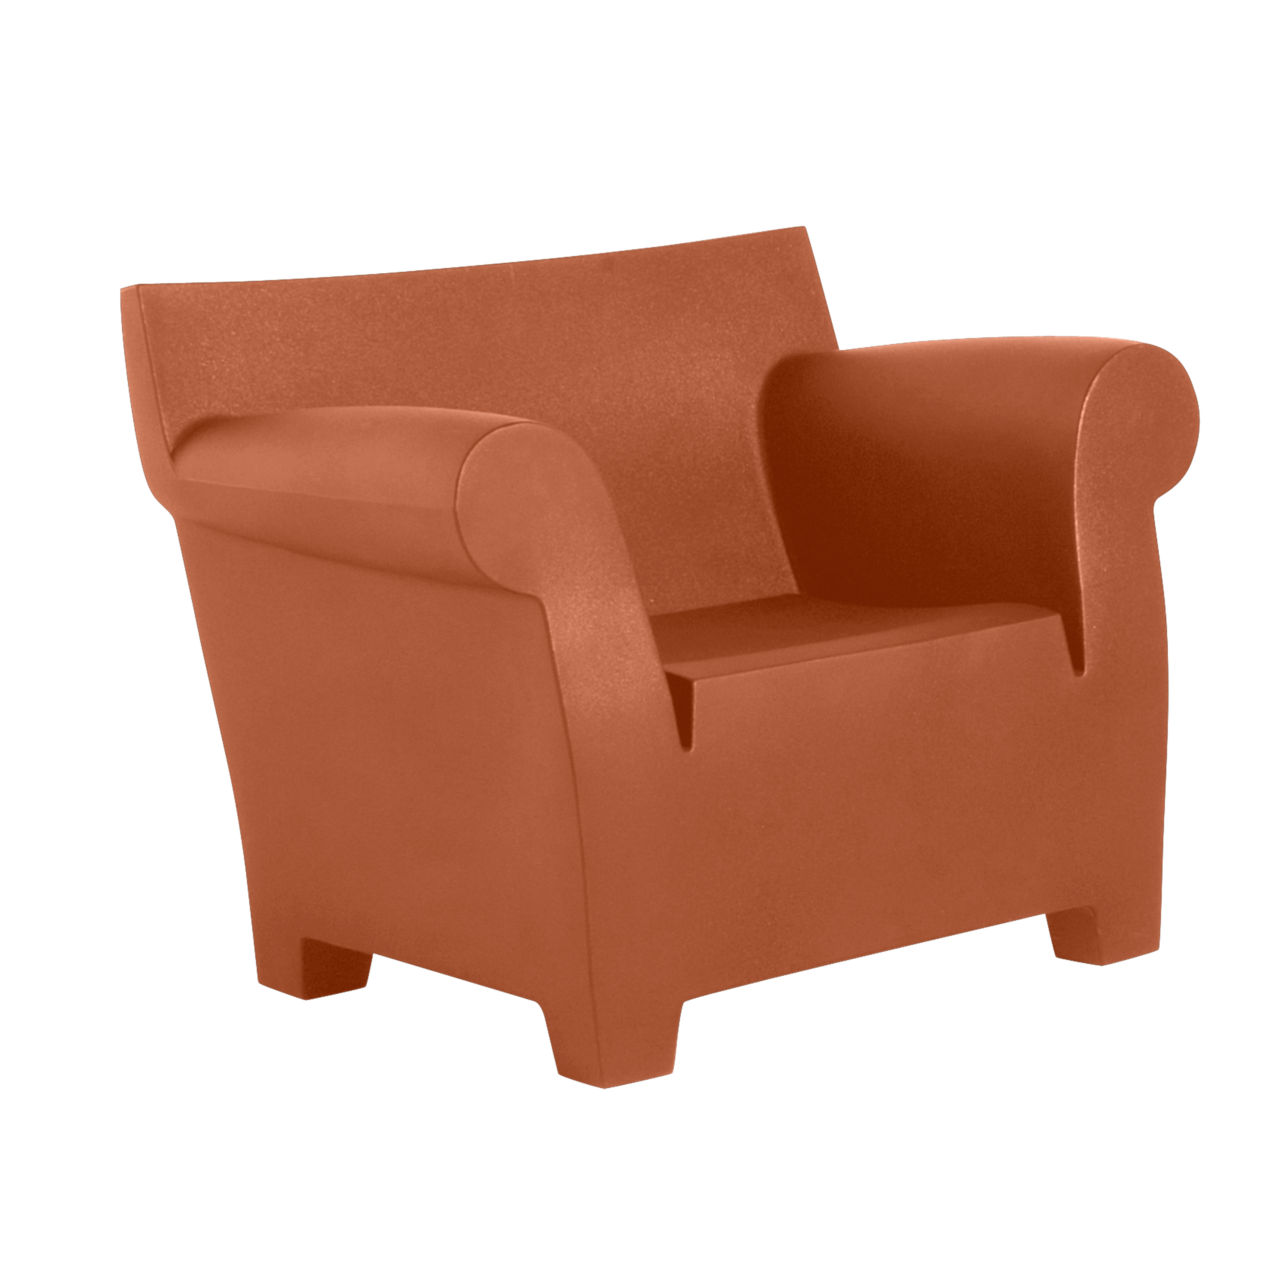 Bubble Club Chair in Terracotta by Kartell